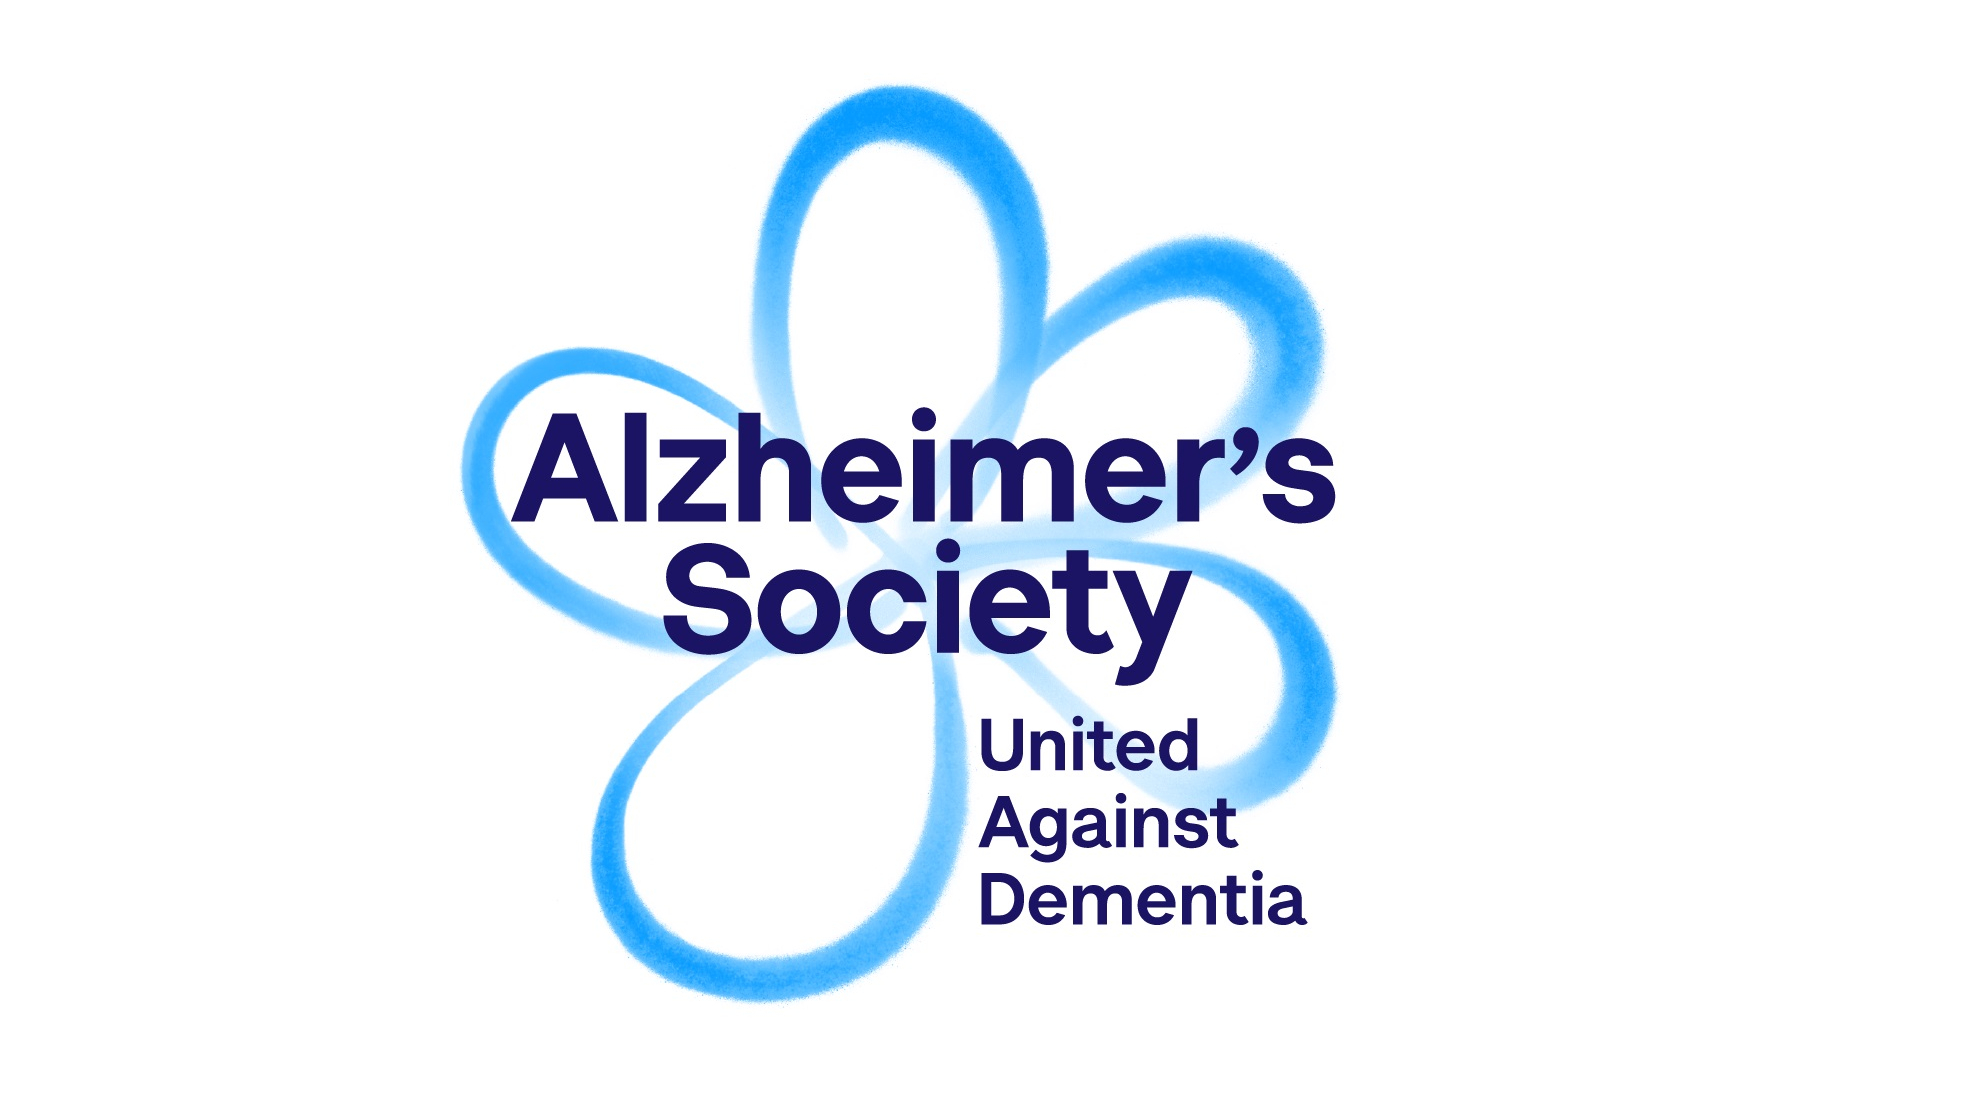 Team Challenge Raises Over £2000 for Alzheimer's